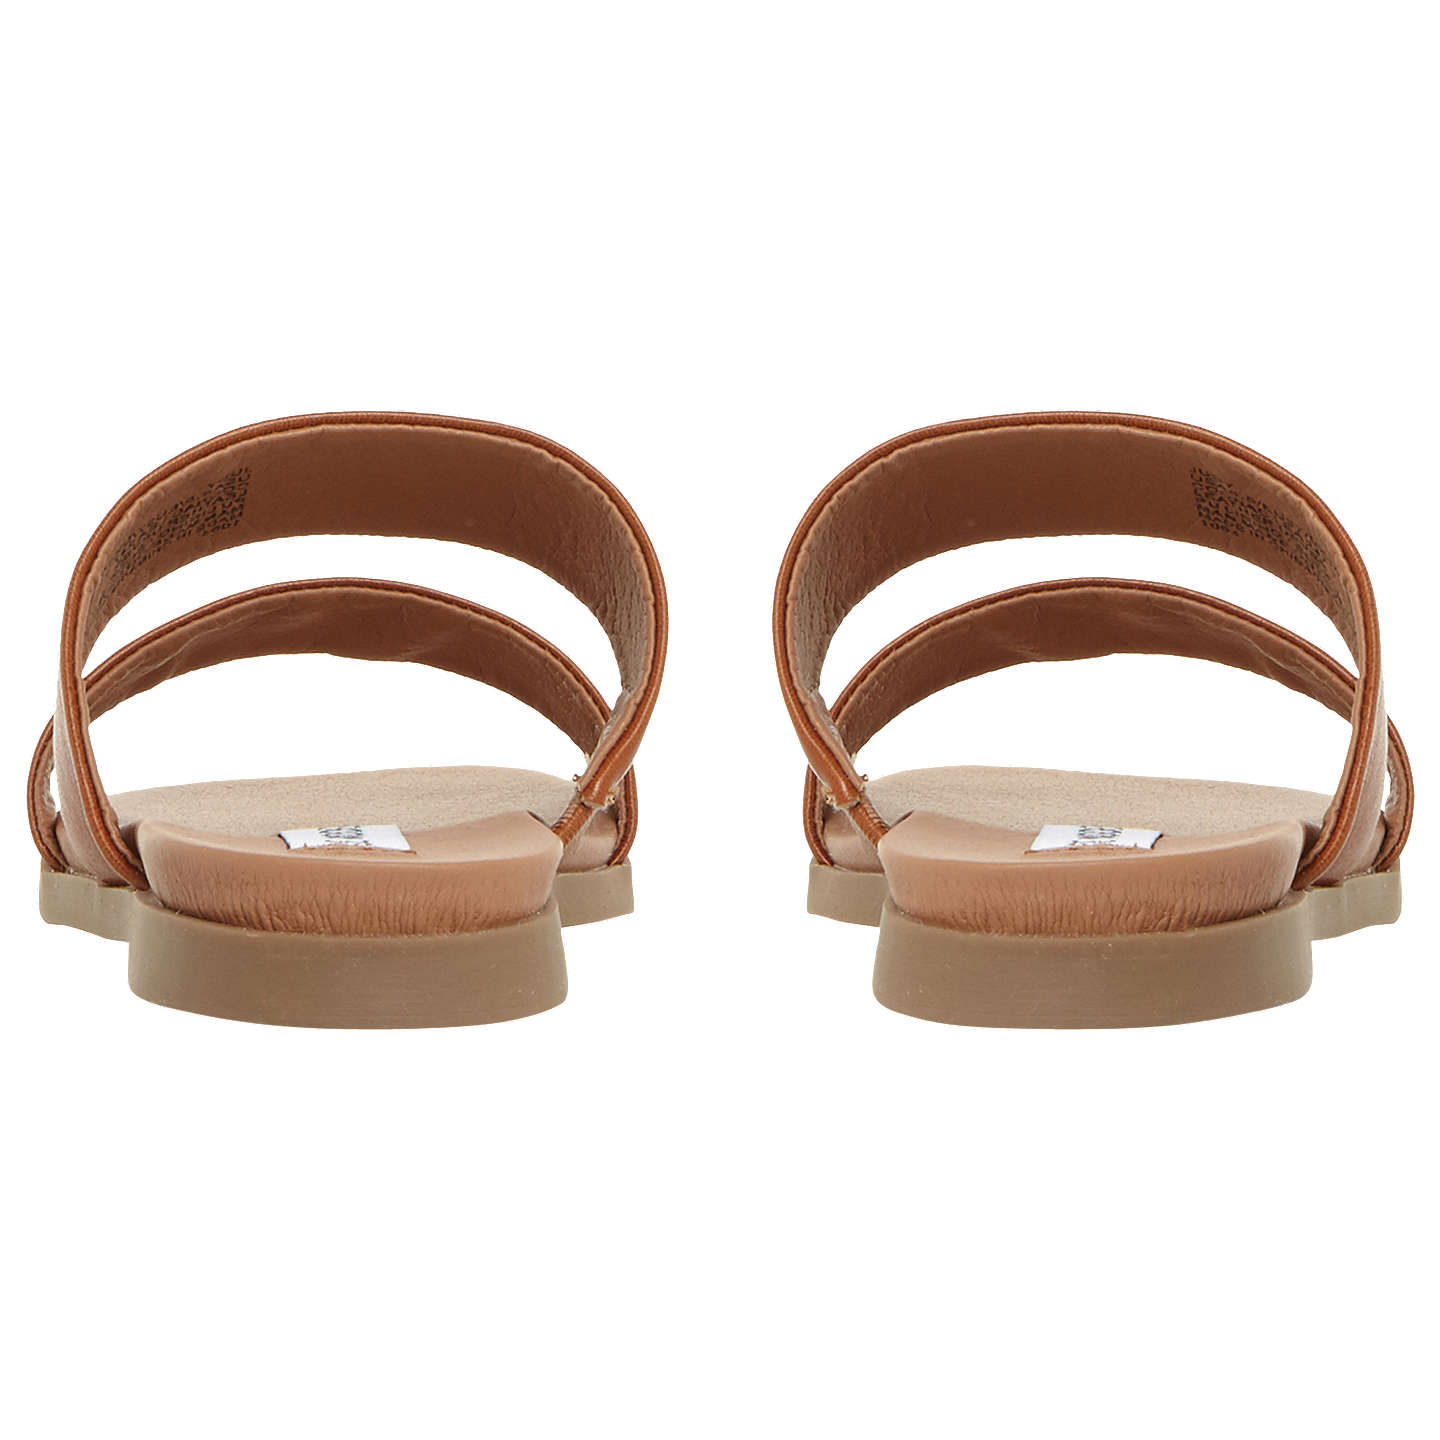 BuySteve Madden Judy Two Band Leather Sliders, Tan, 3 Online at johnlewis.com